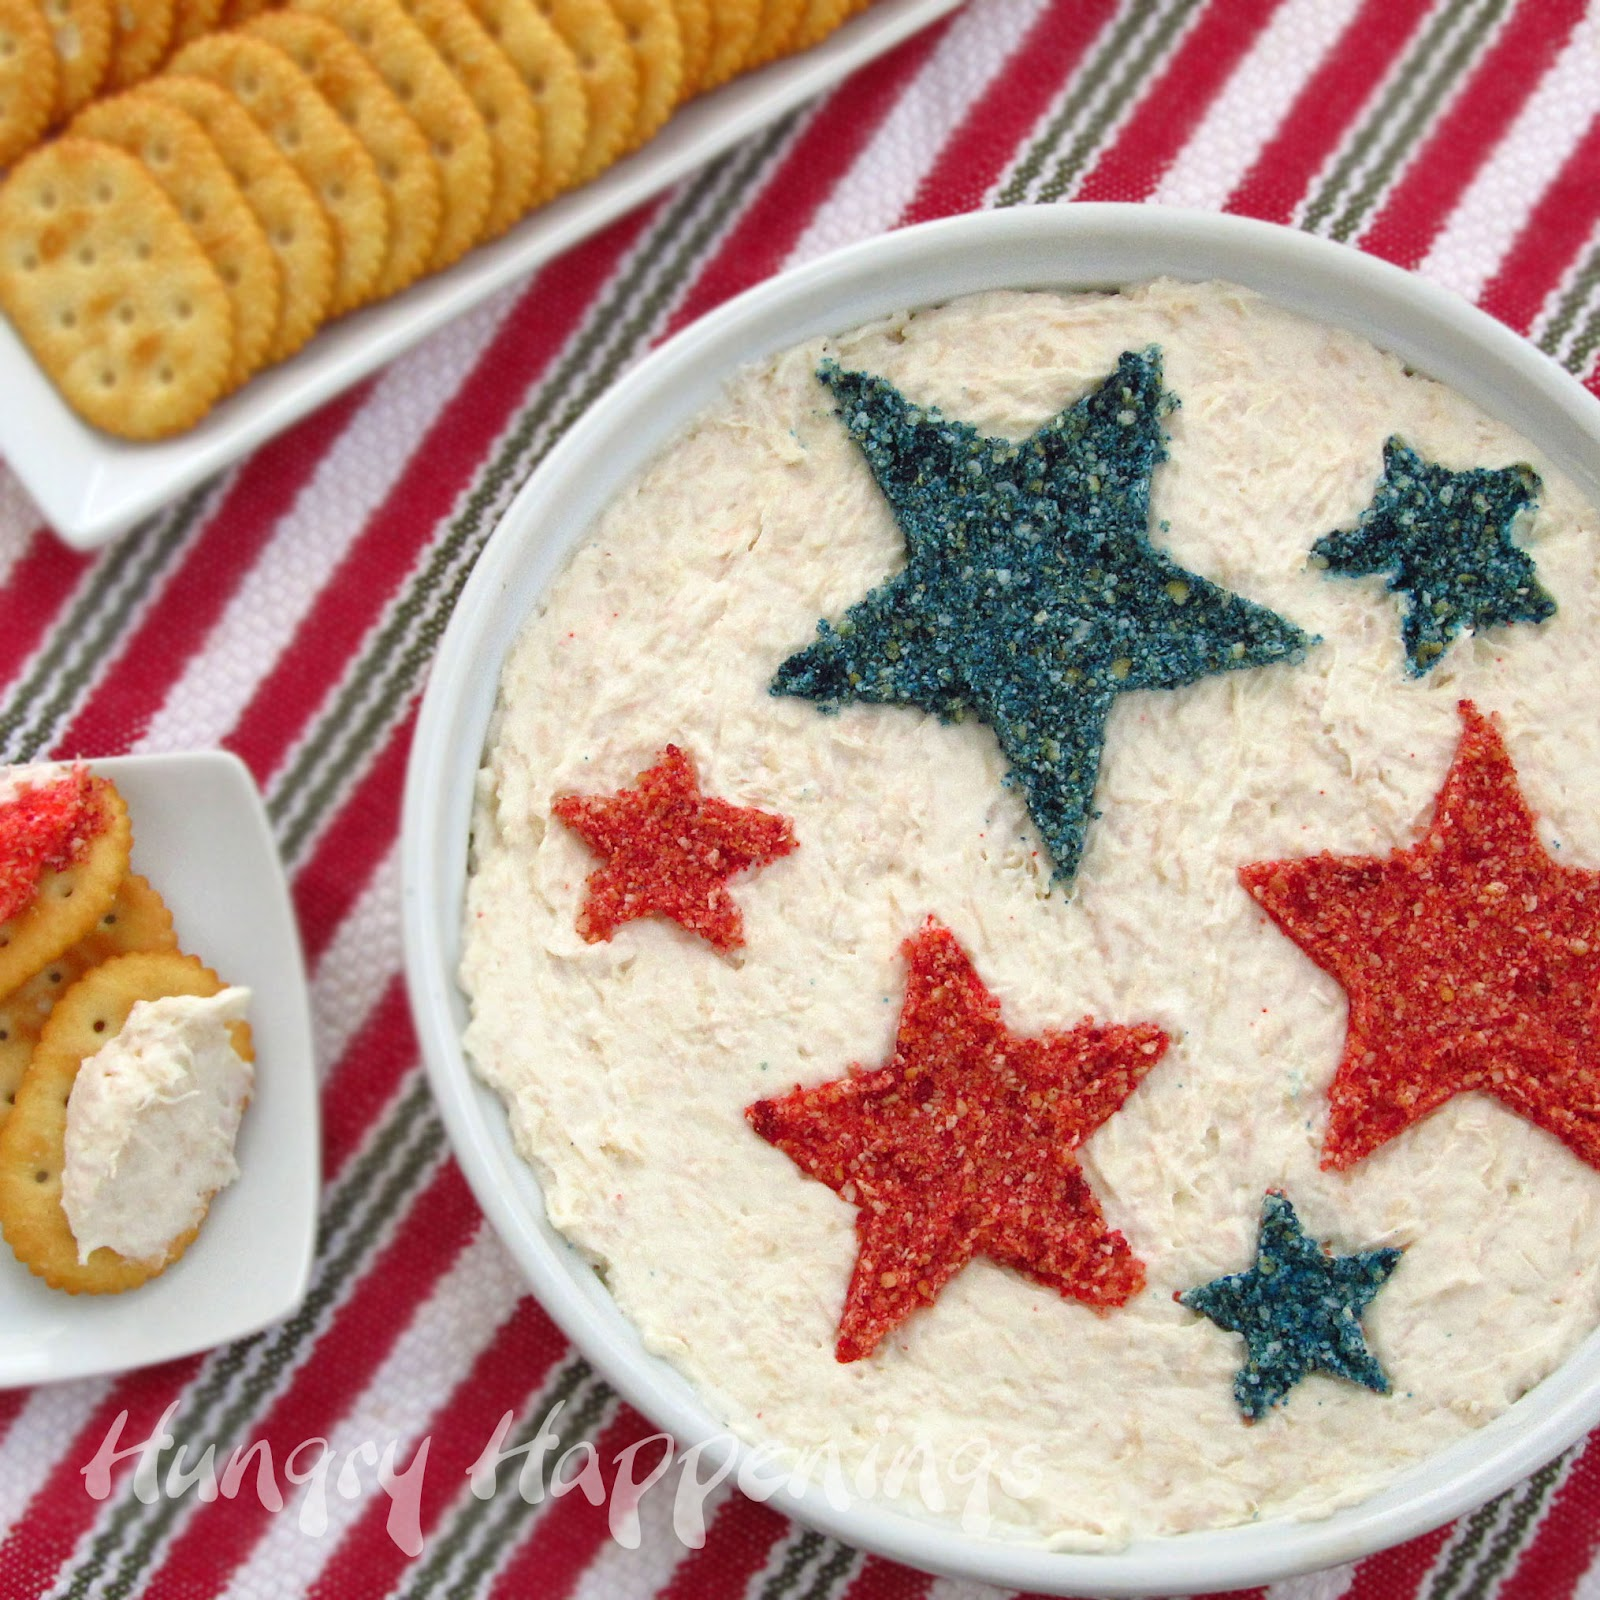 Hungry Happenings: How to turn a plain dip into a patriotic